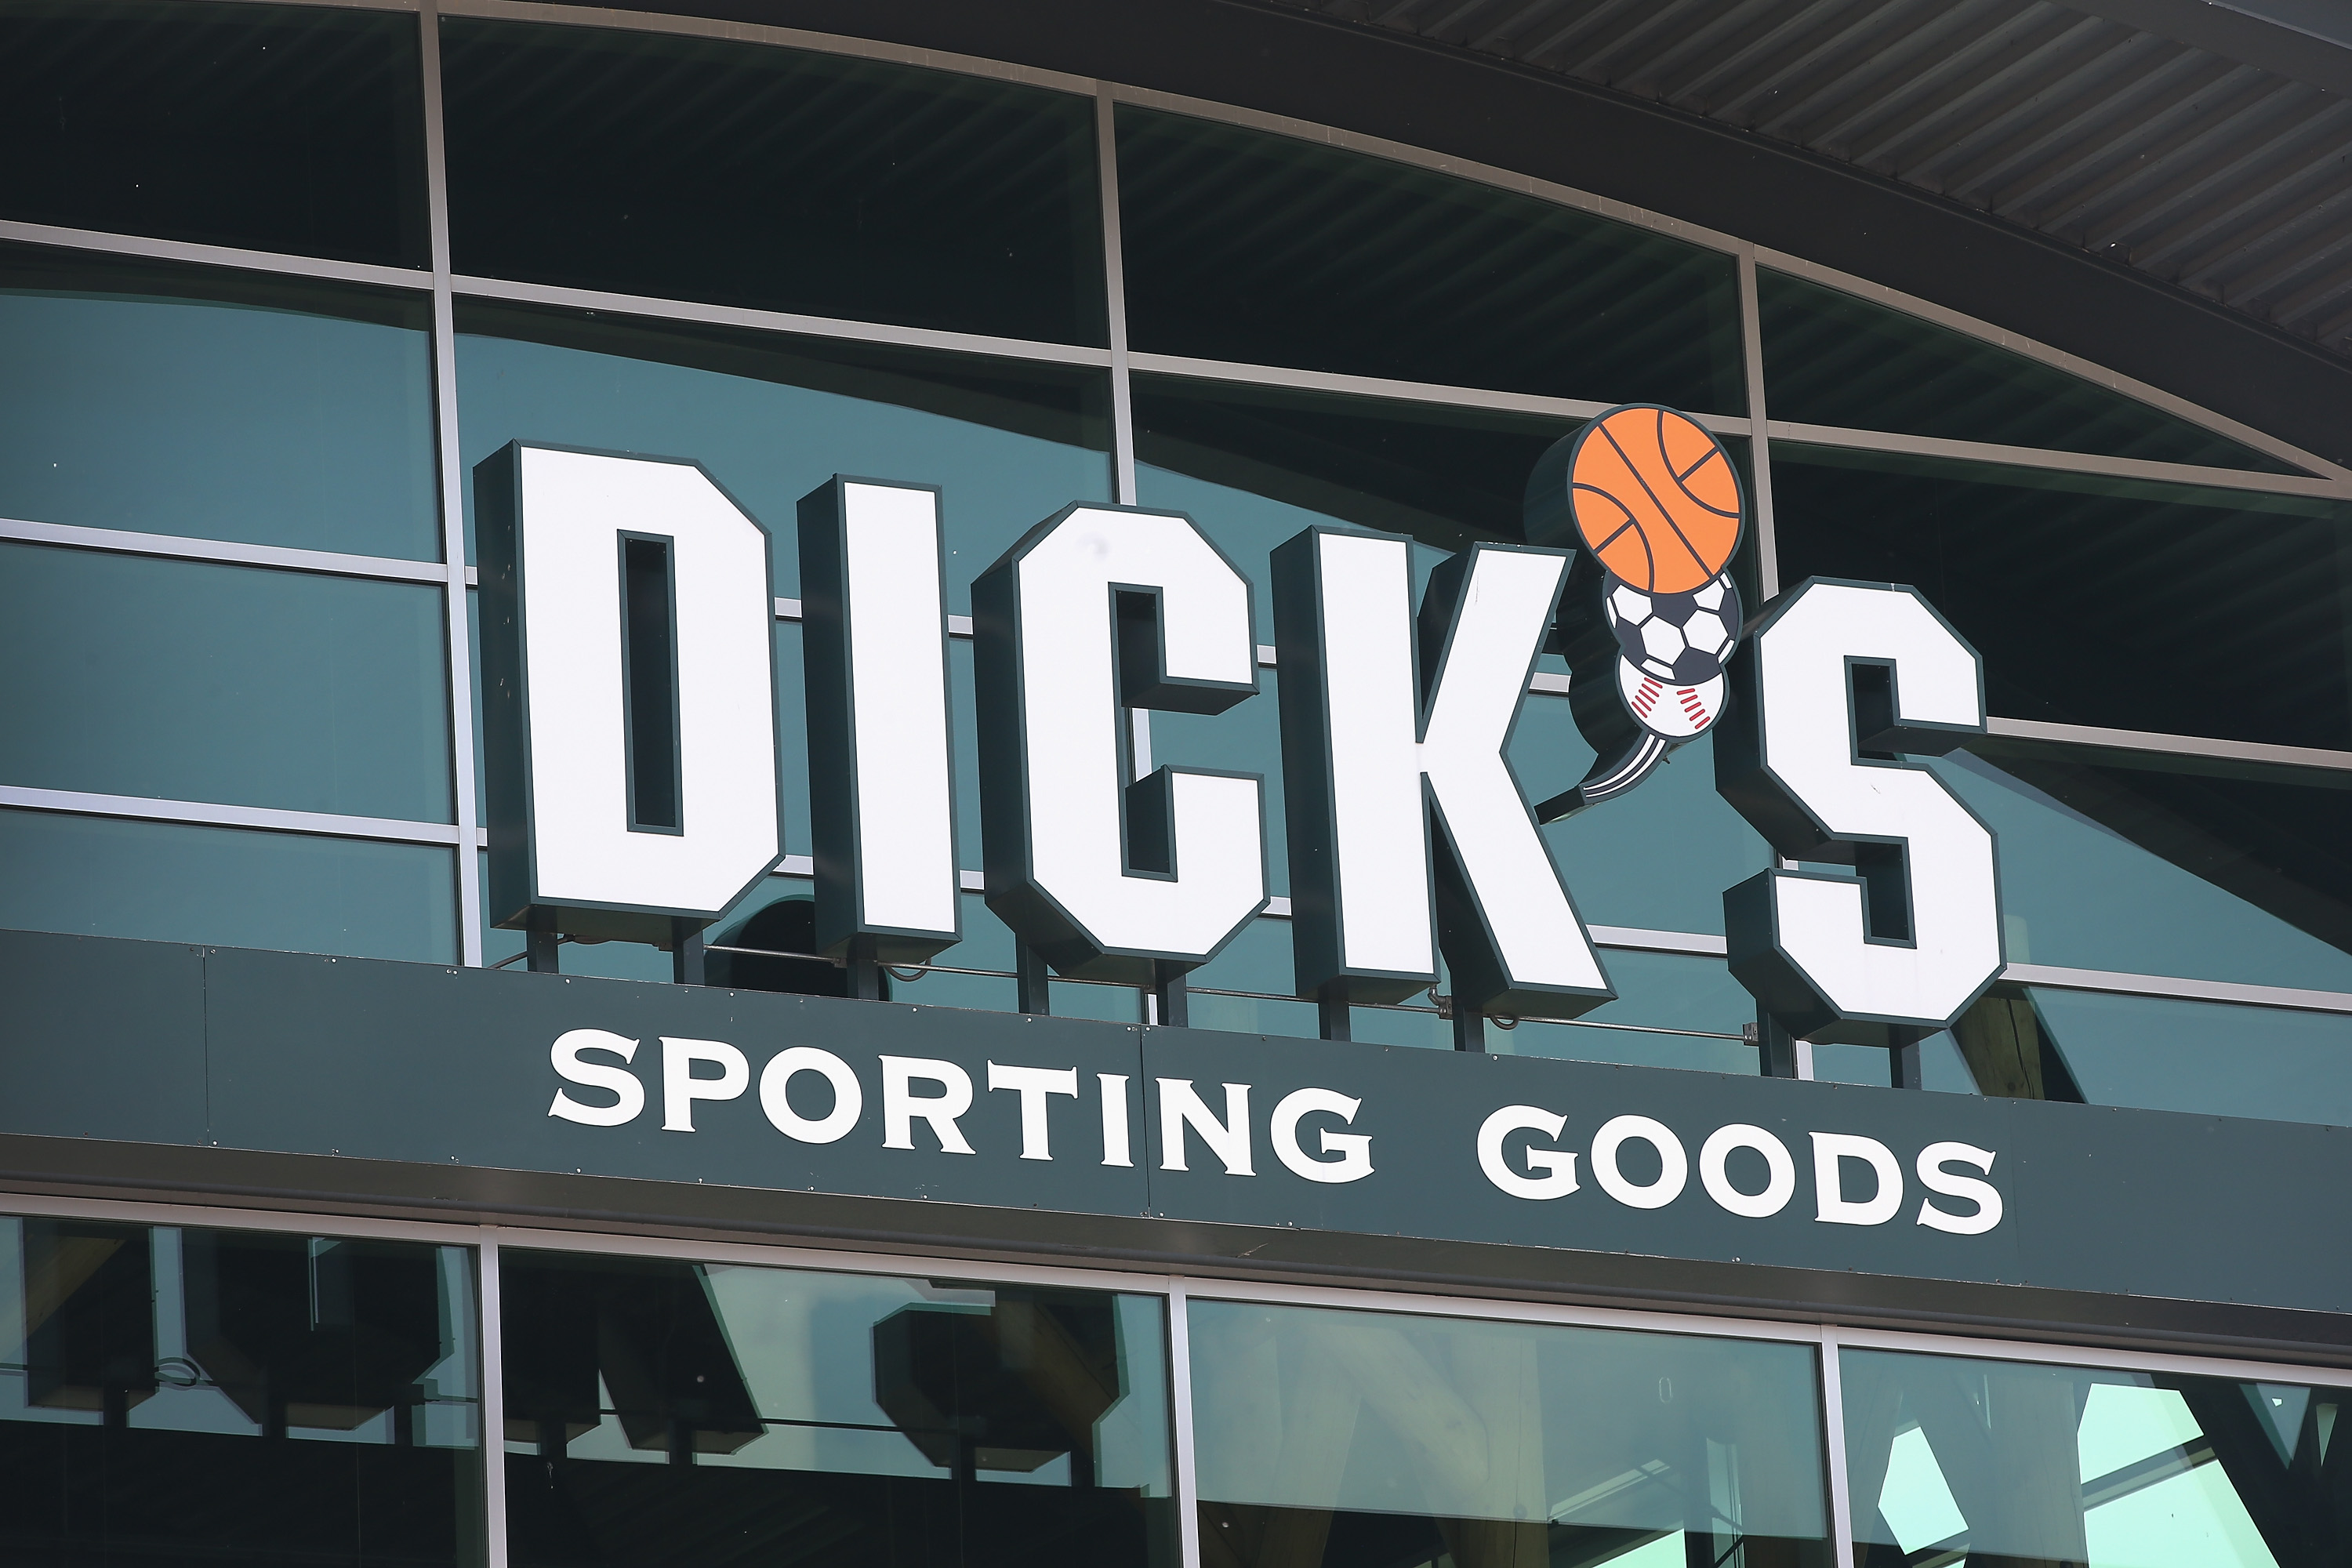 Dick's aims to clear unsold inventory with new outlet, popup stores sourcing journal